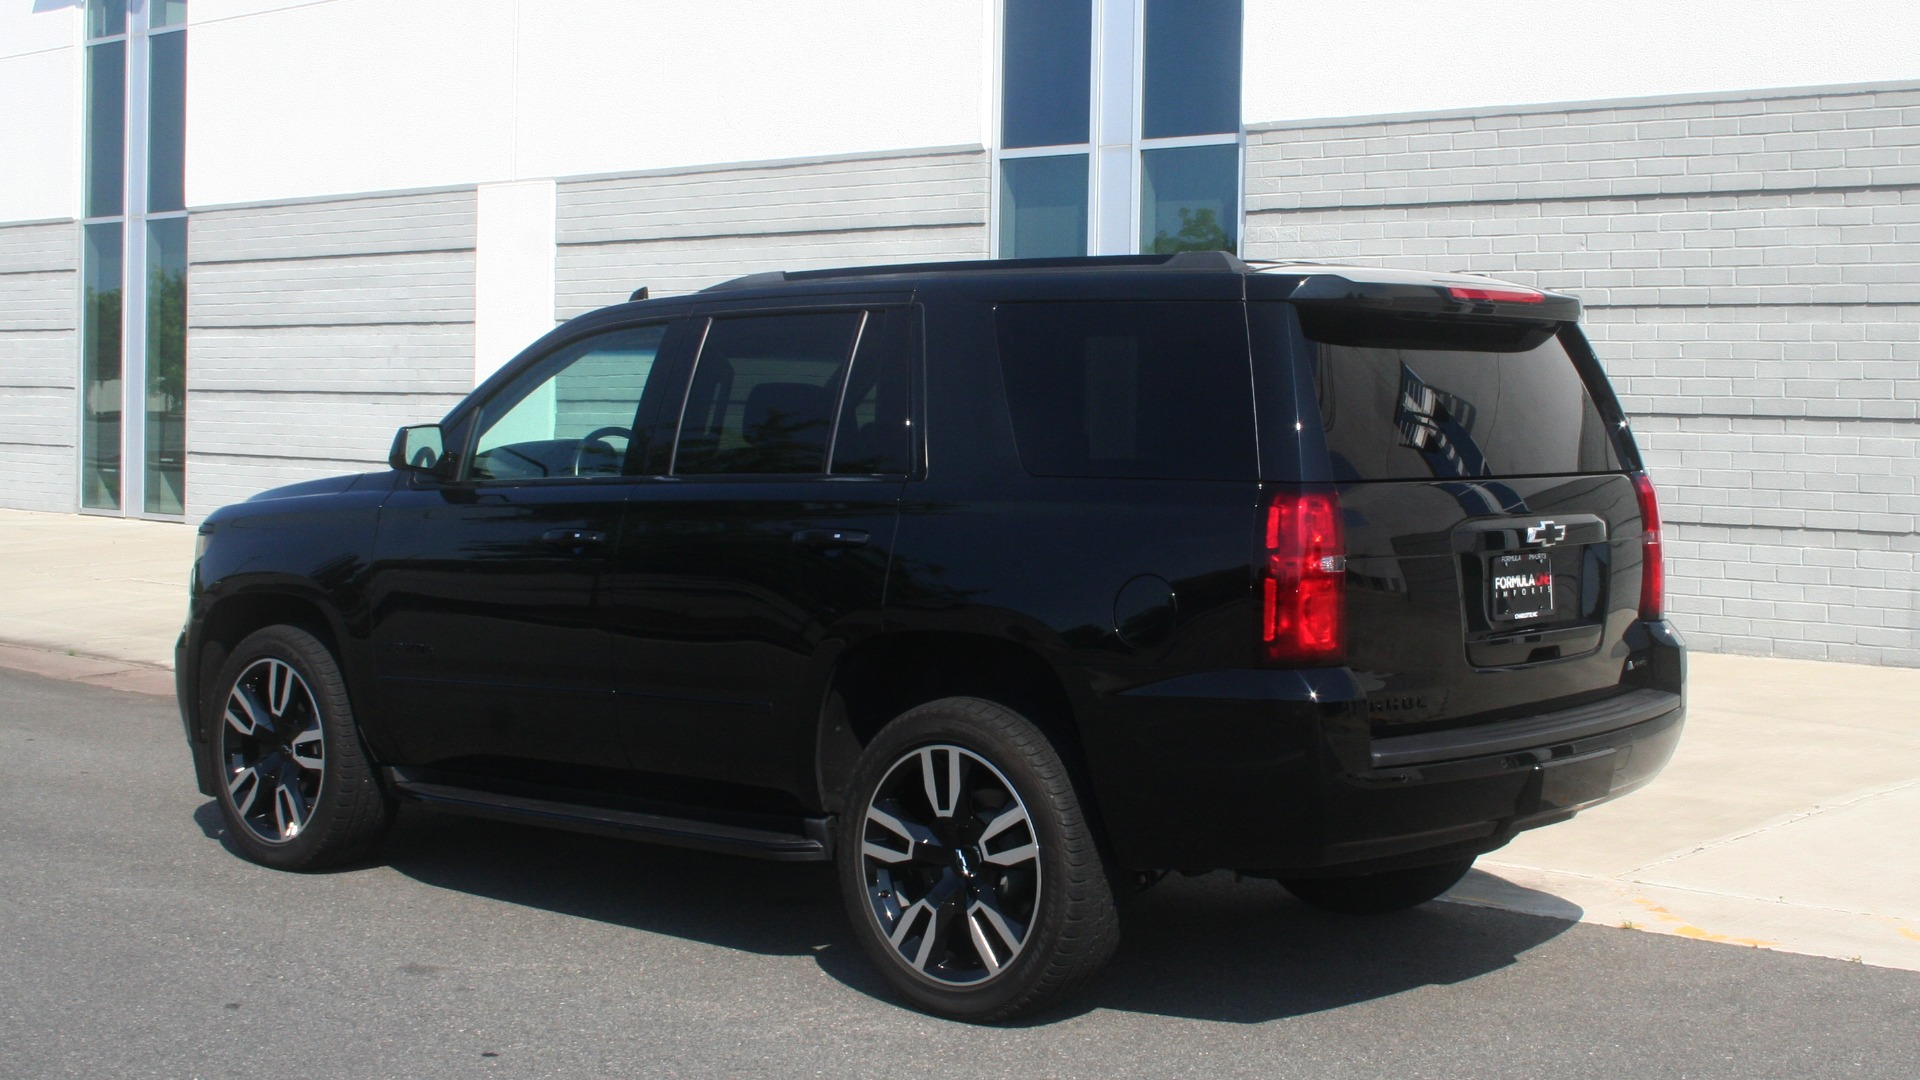 Used 2018 Chevrolet TAHOE PREMIER RST / 4X4 / NAV / BOSE / SUNROOF / 3-ROW / REARVIEW for sale $65,995 at Formula Imports in Charlotte NC 28227 6